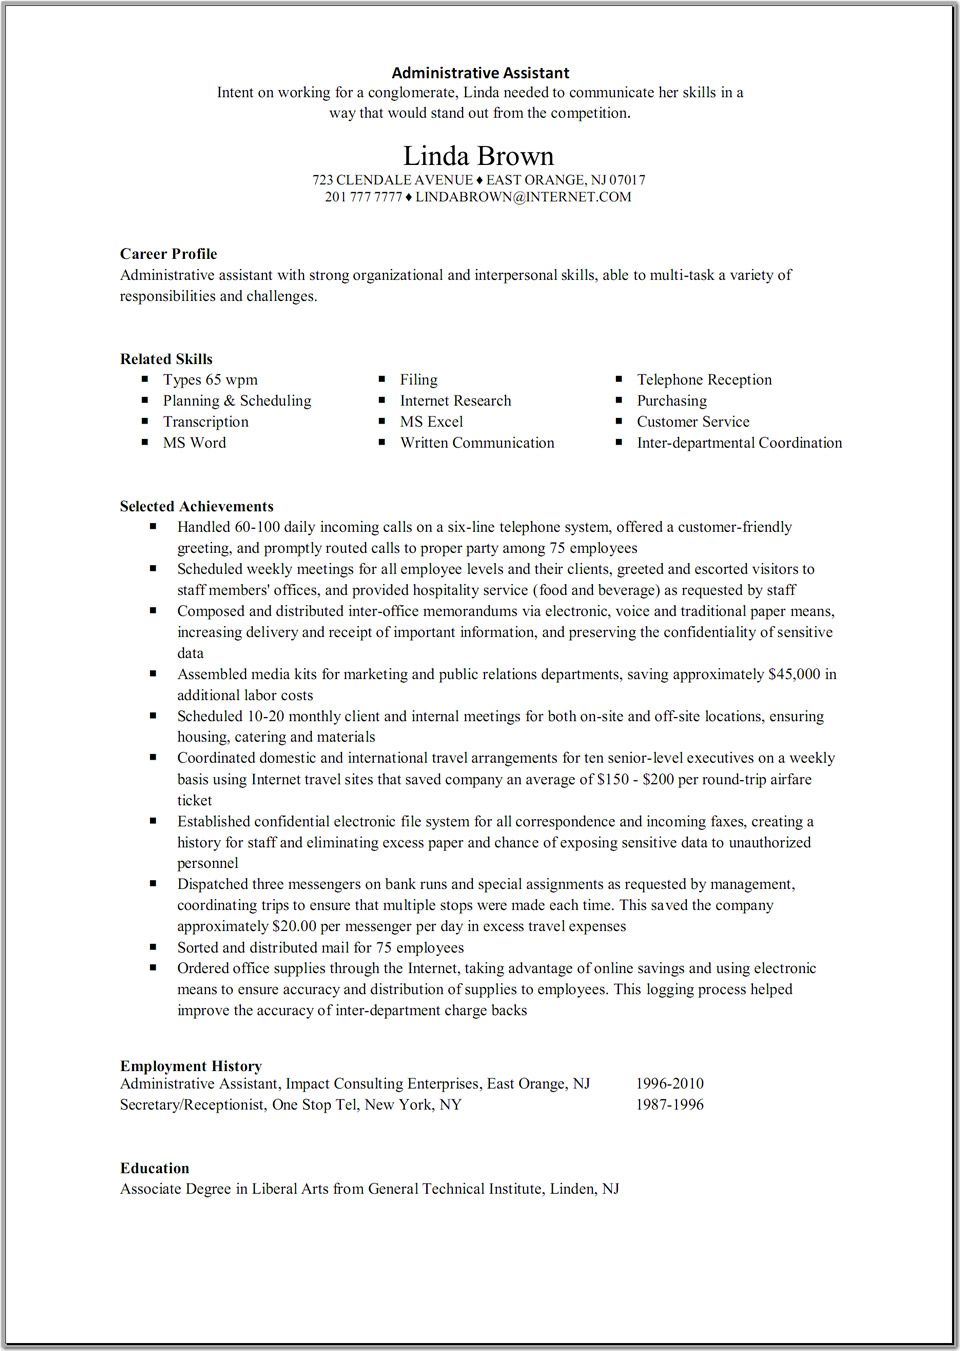 Administrative Secretary Resume Impressive Great Administrative Assistant Resumes  Administrative Assistant .